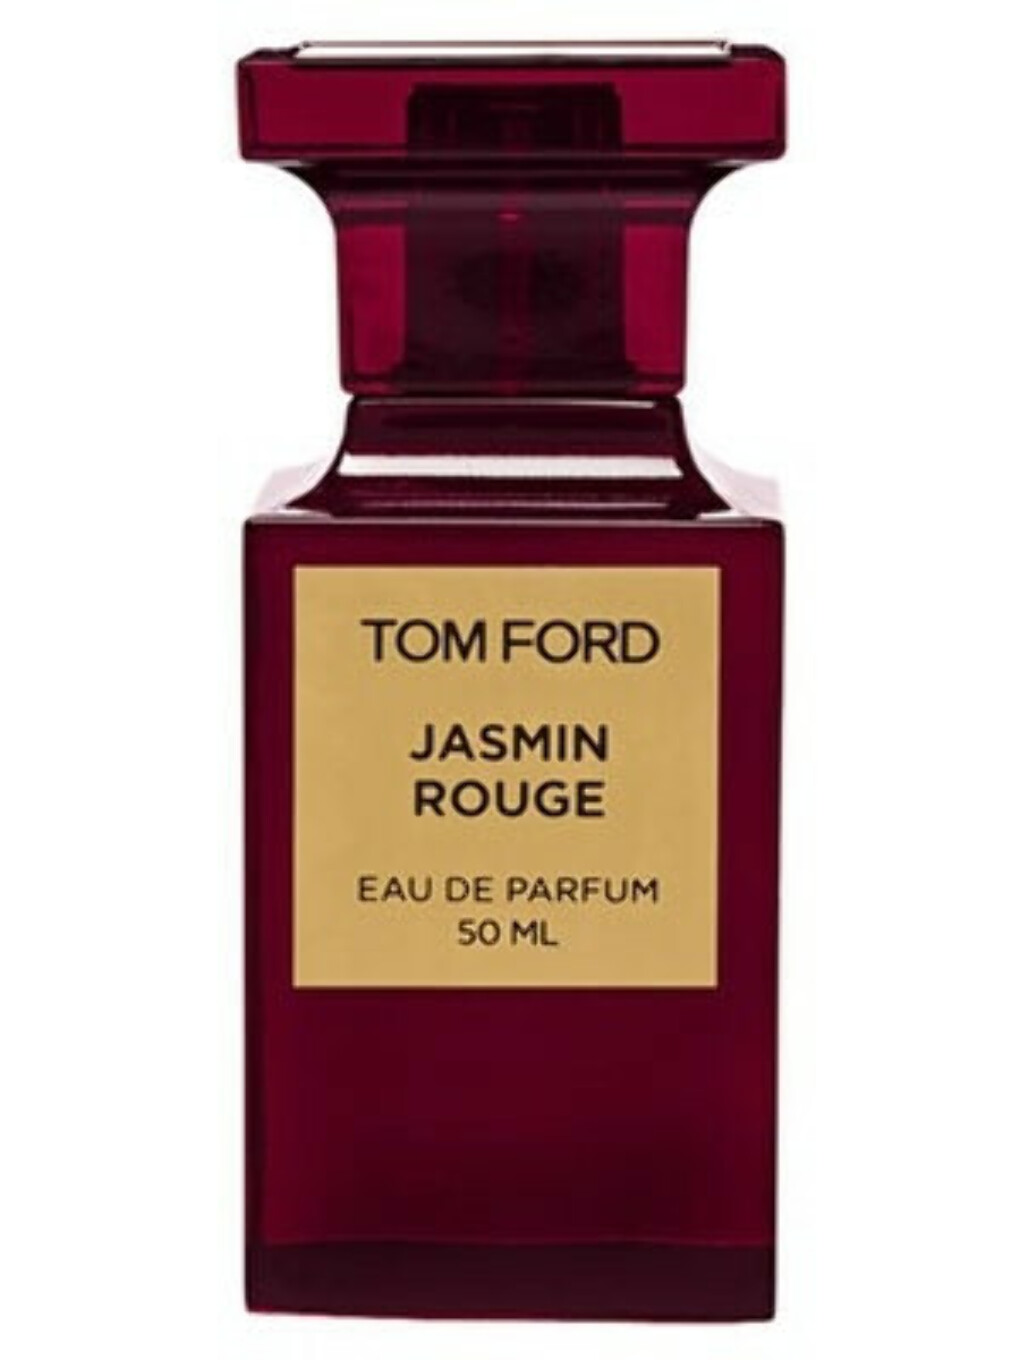 Tom Ford Jasmin Rouge  Tom Ford-Dushistik.ru